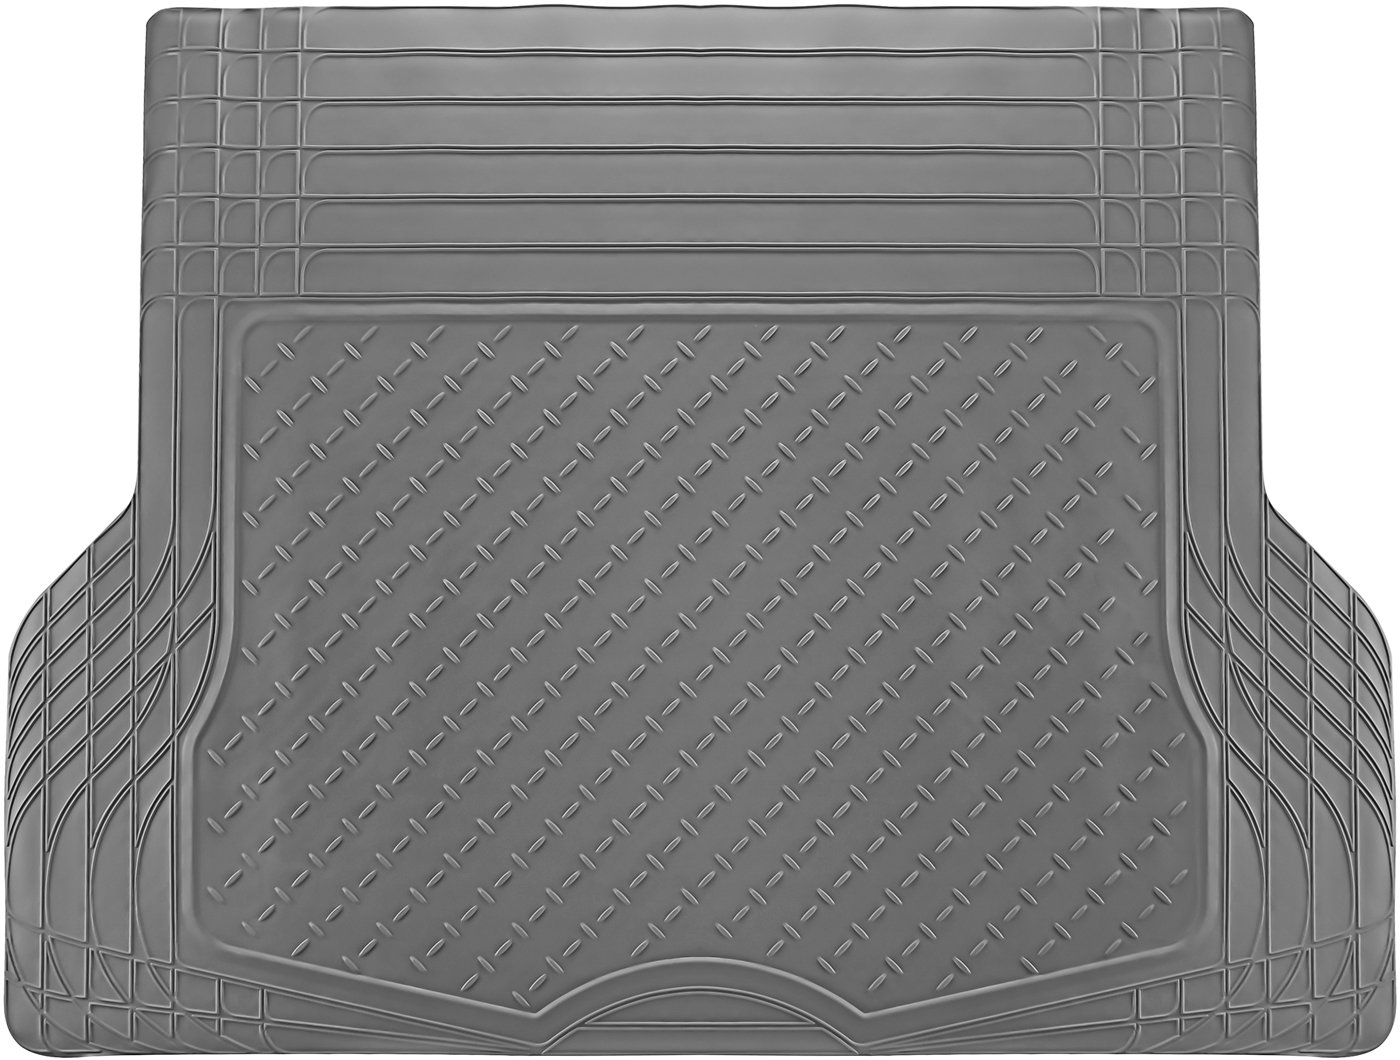 OxGord WeatherShield HD Rubber Trunk Cargo Liner Floor Mat, Trim-to-Fit for Car, SUV, Van, Trucks Black TLPV01CQ-BK